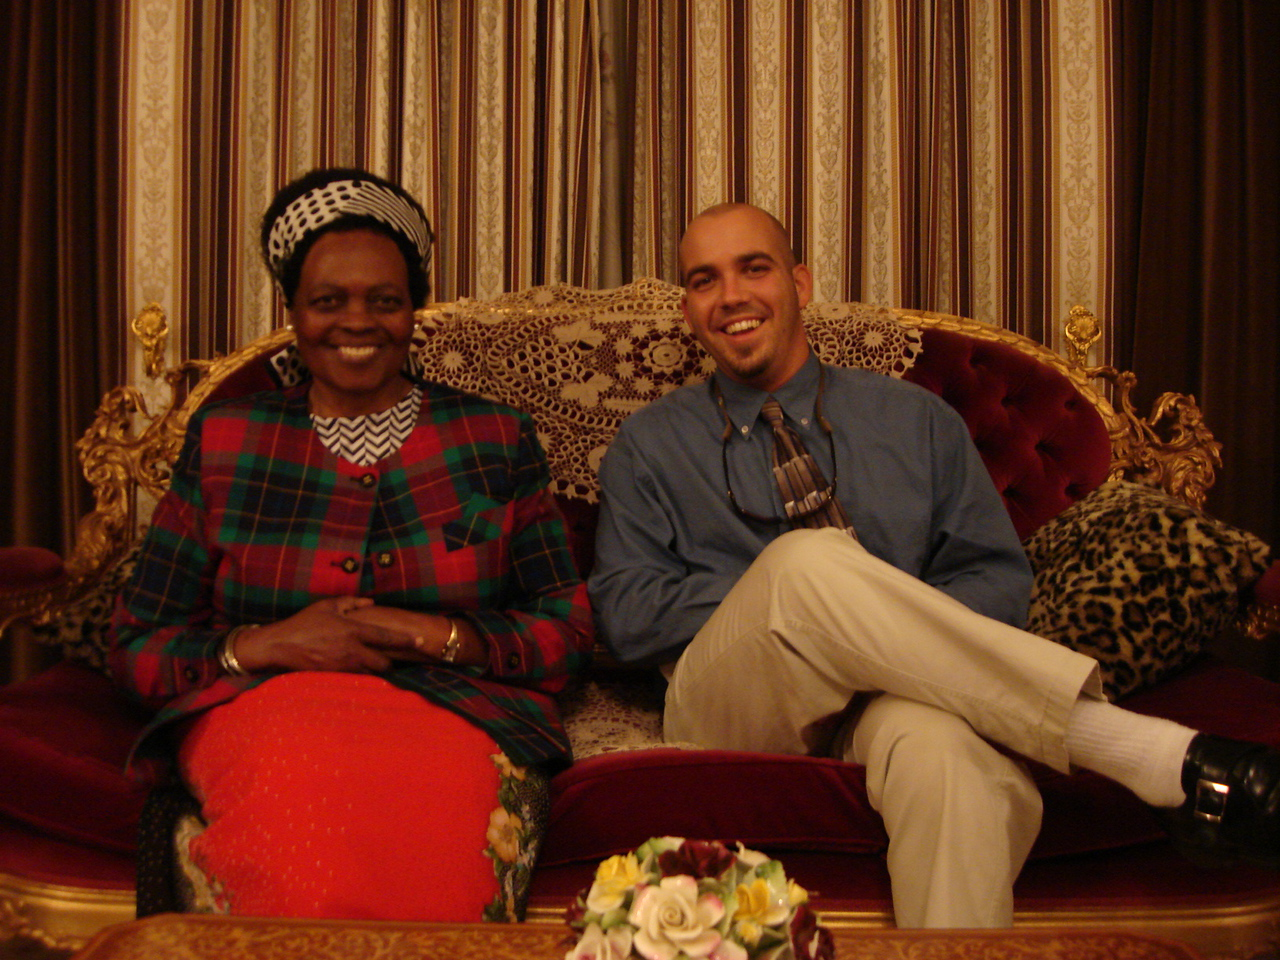 Nic and the former First Lady of Malawi.